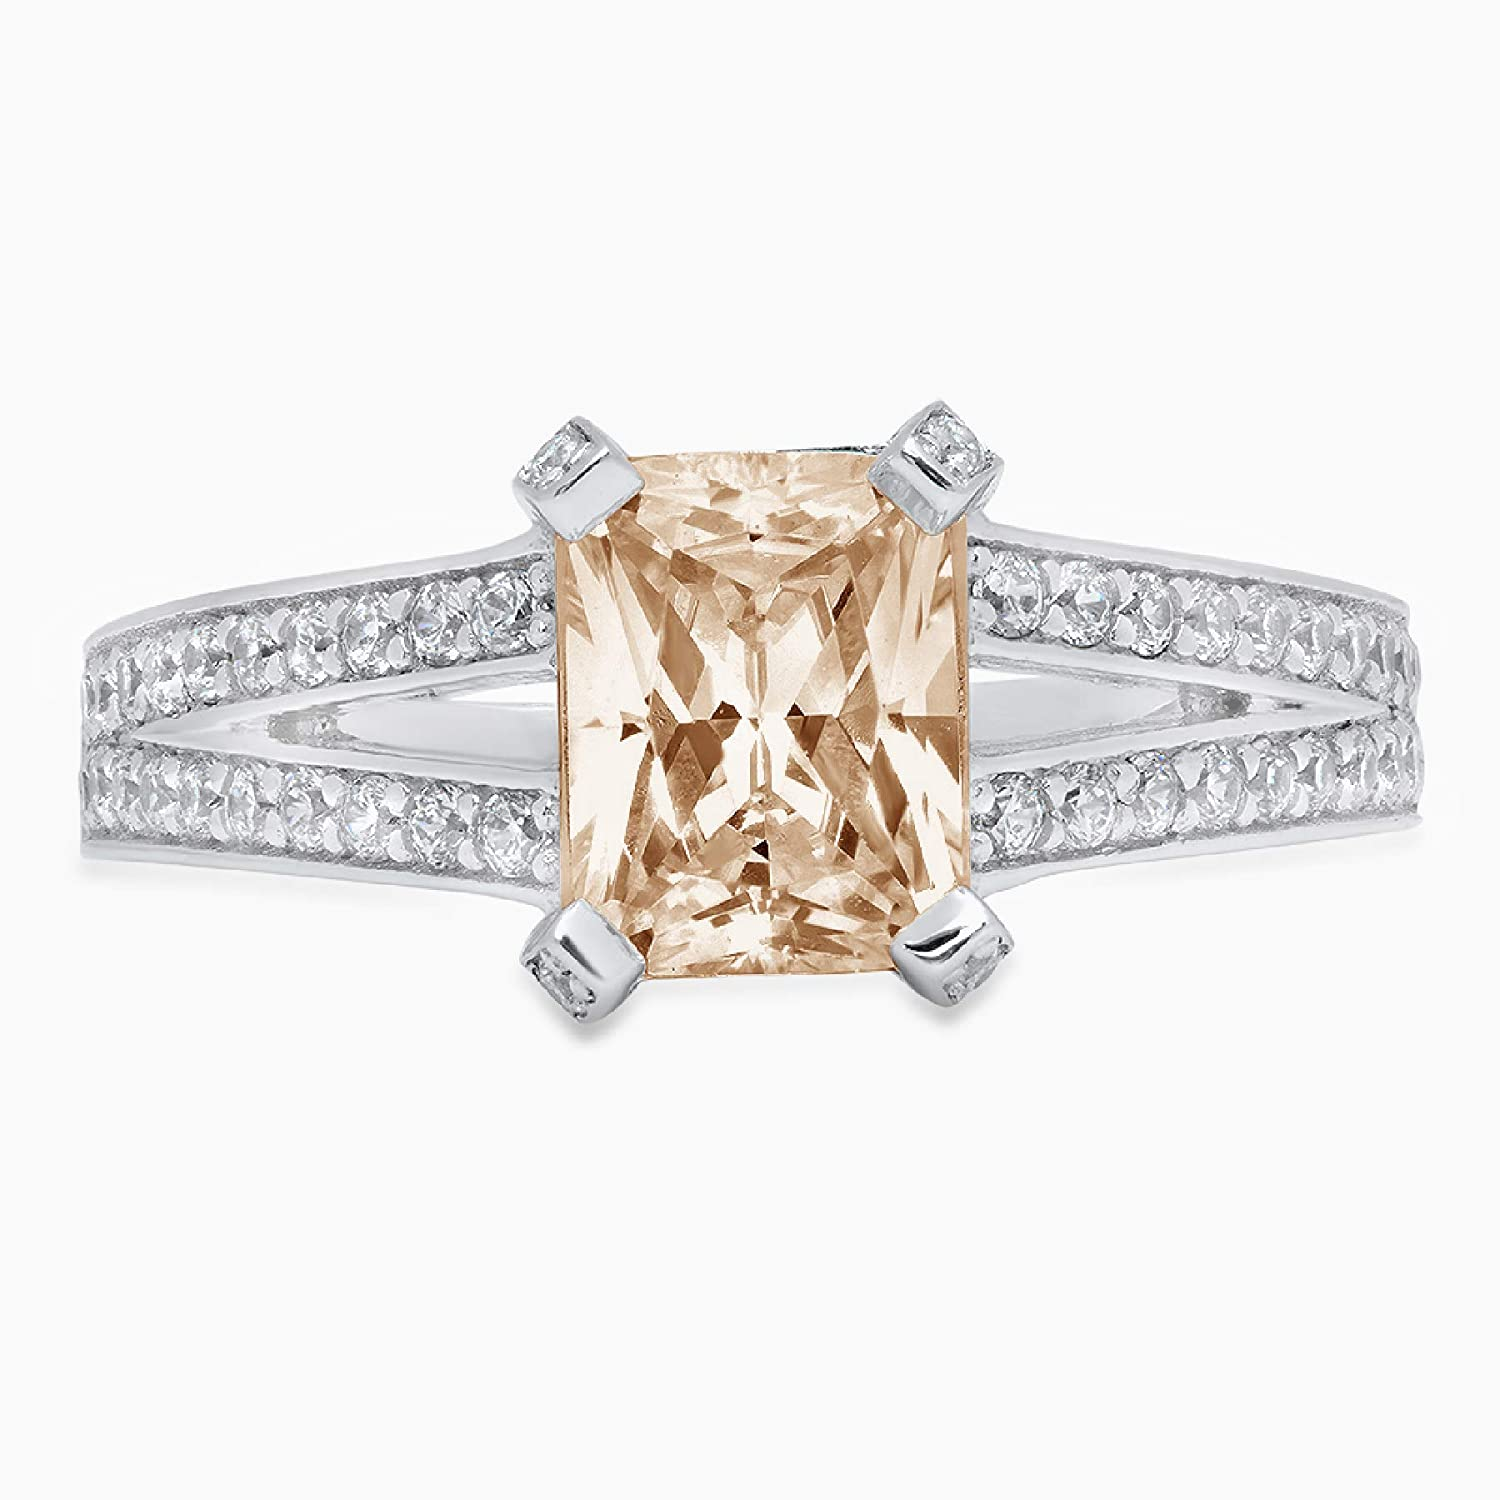 2.64ct Emerald Cut Solitaire with Accent split shank Brown Champagne Ideal VVS1 Simulated Diamond CZ Engagement Promise Statement Anniversary Bridal Wedding Ring Solid 14k White Gold